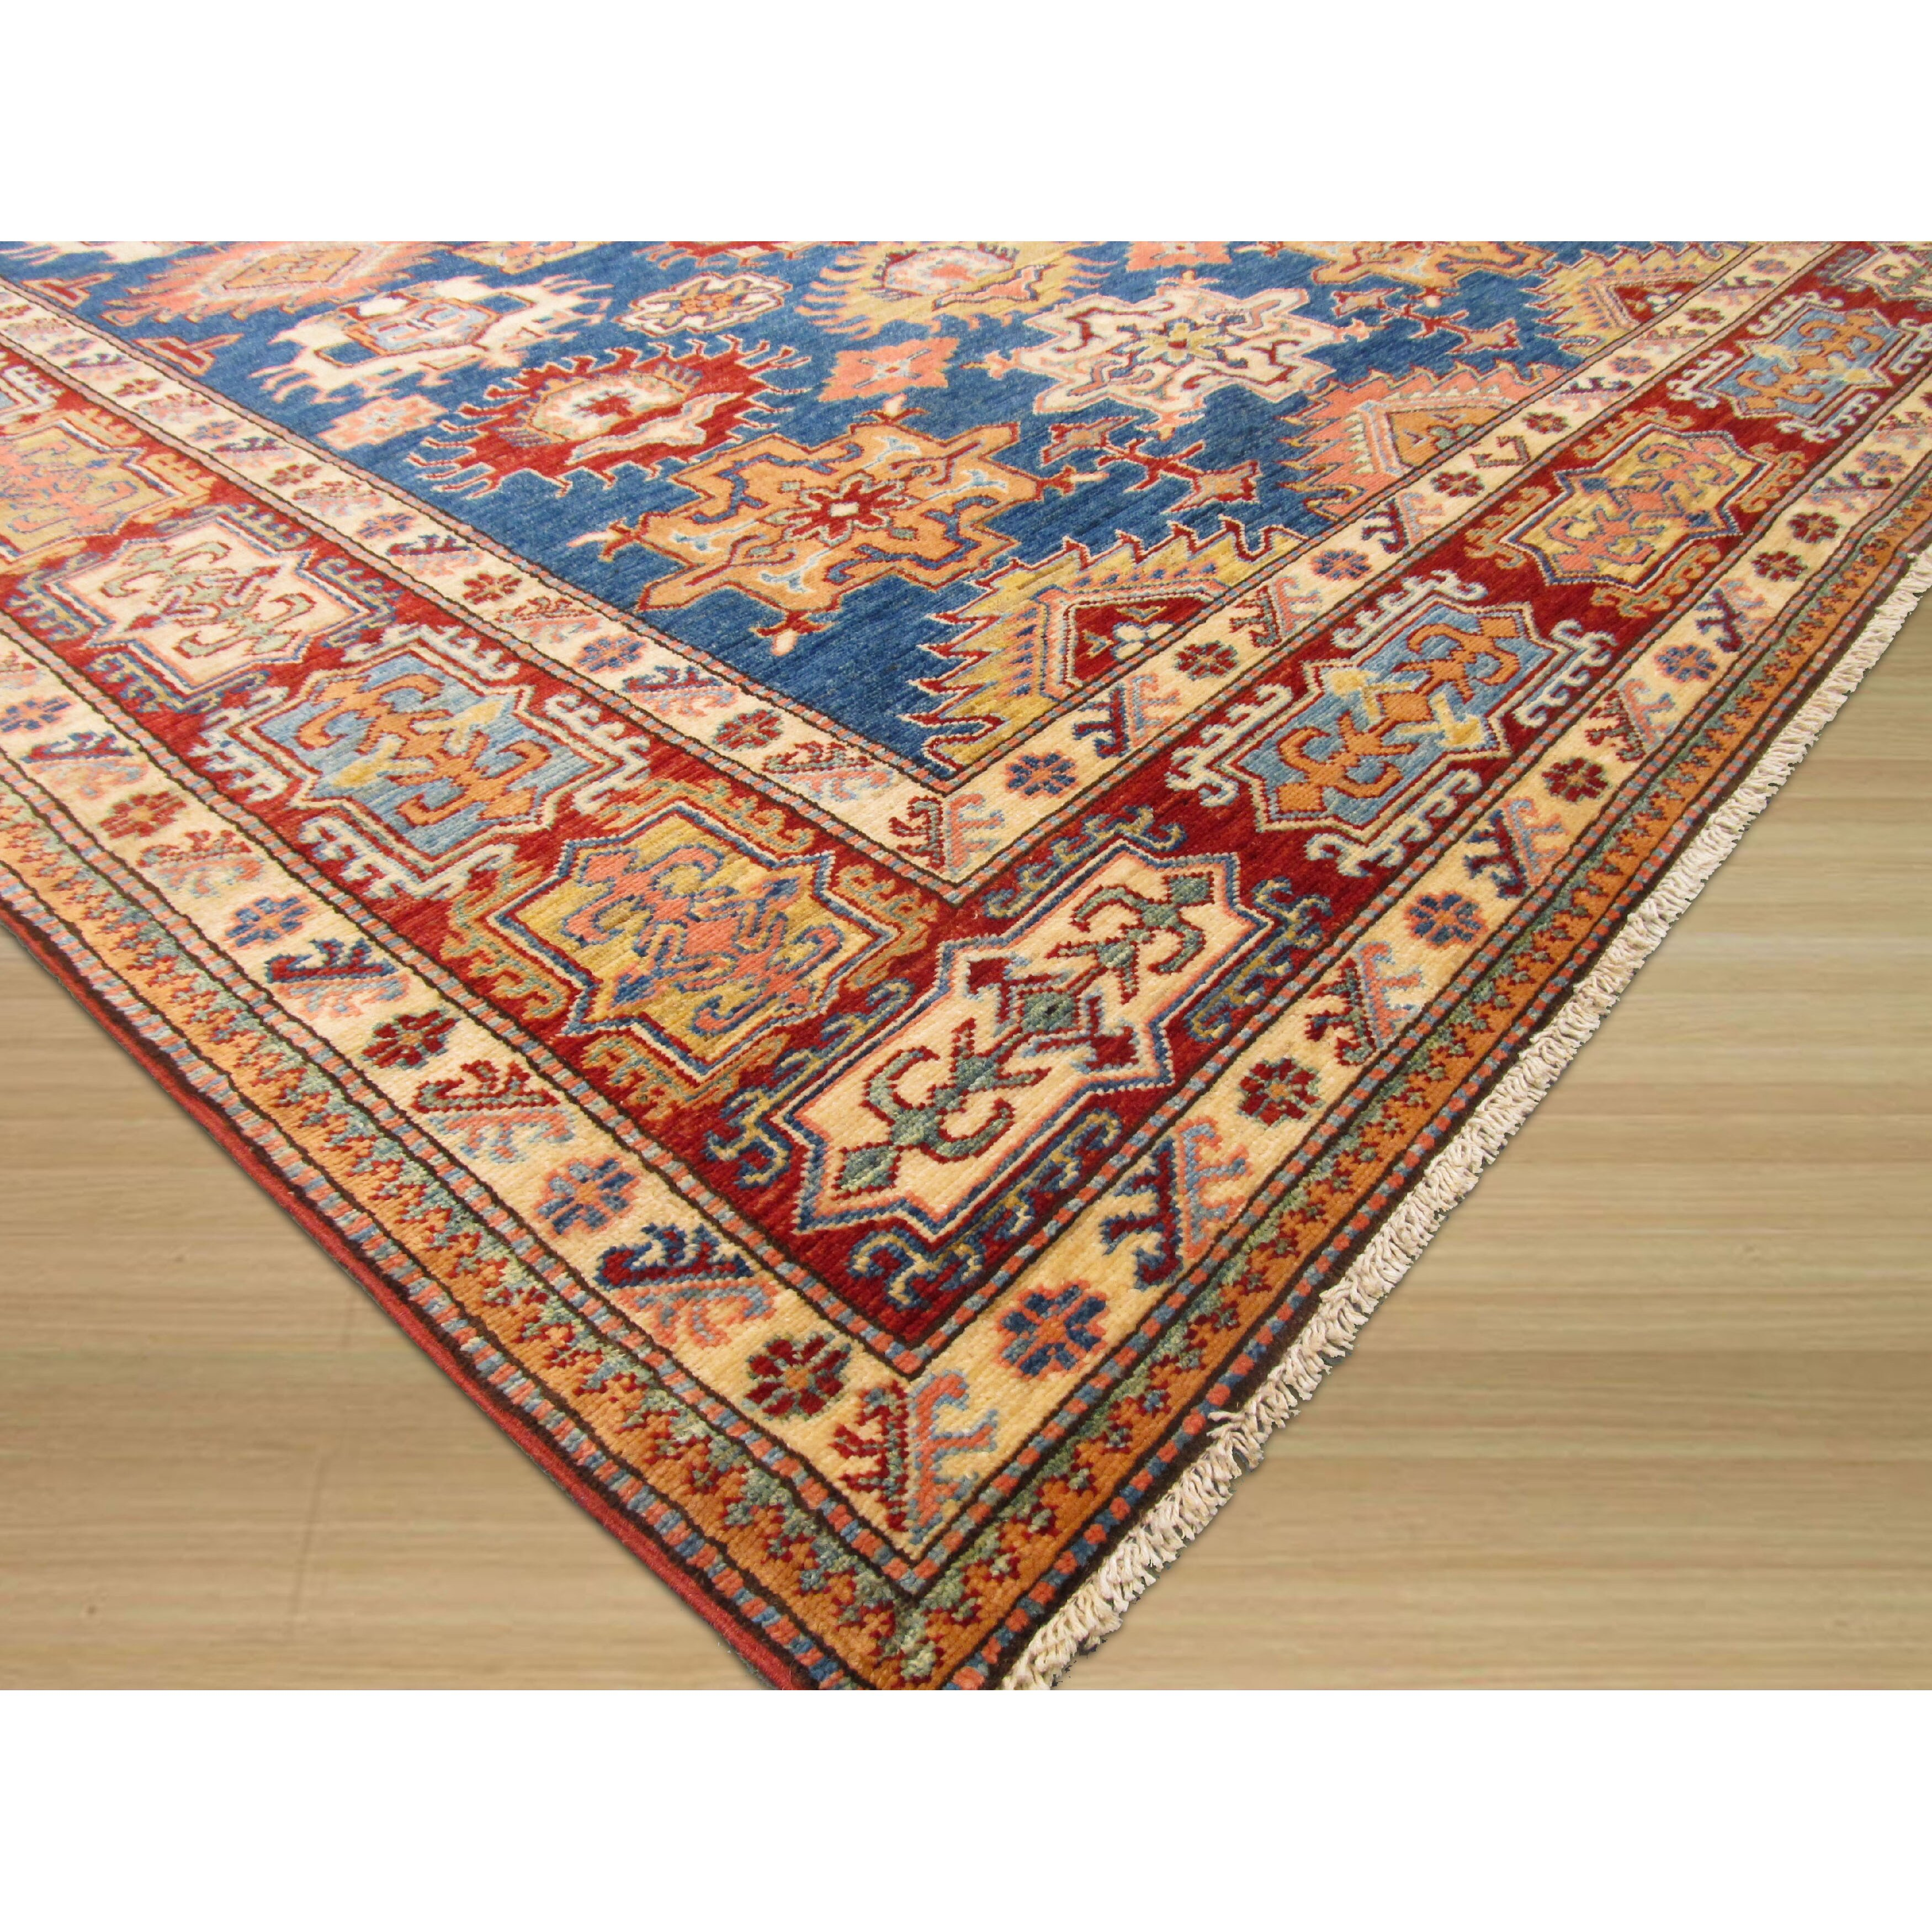 Eastern Rugs Hand-Knotted Blue Area Rug